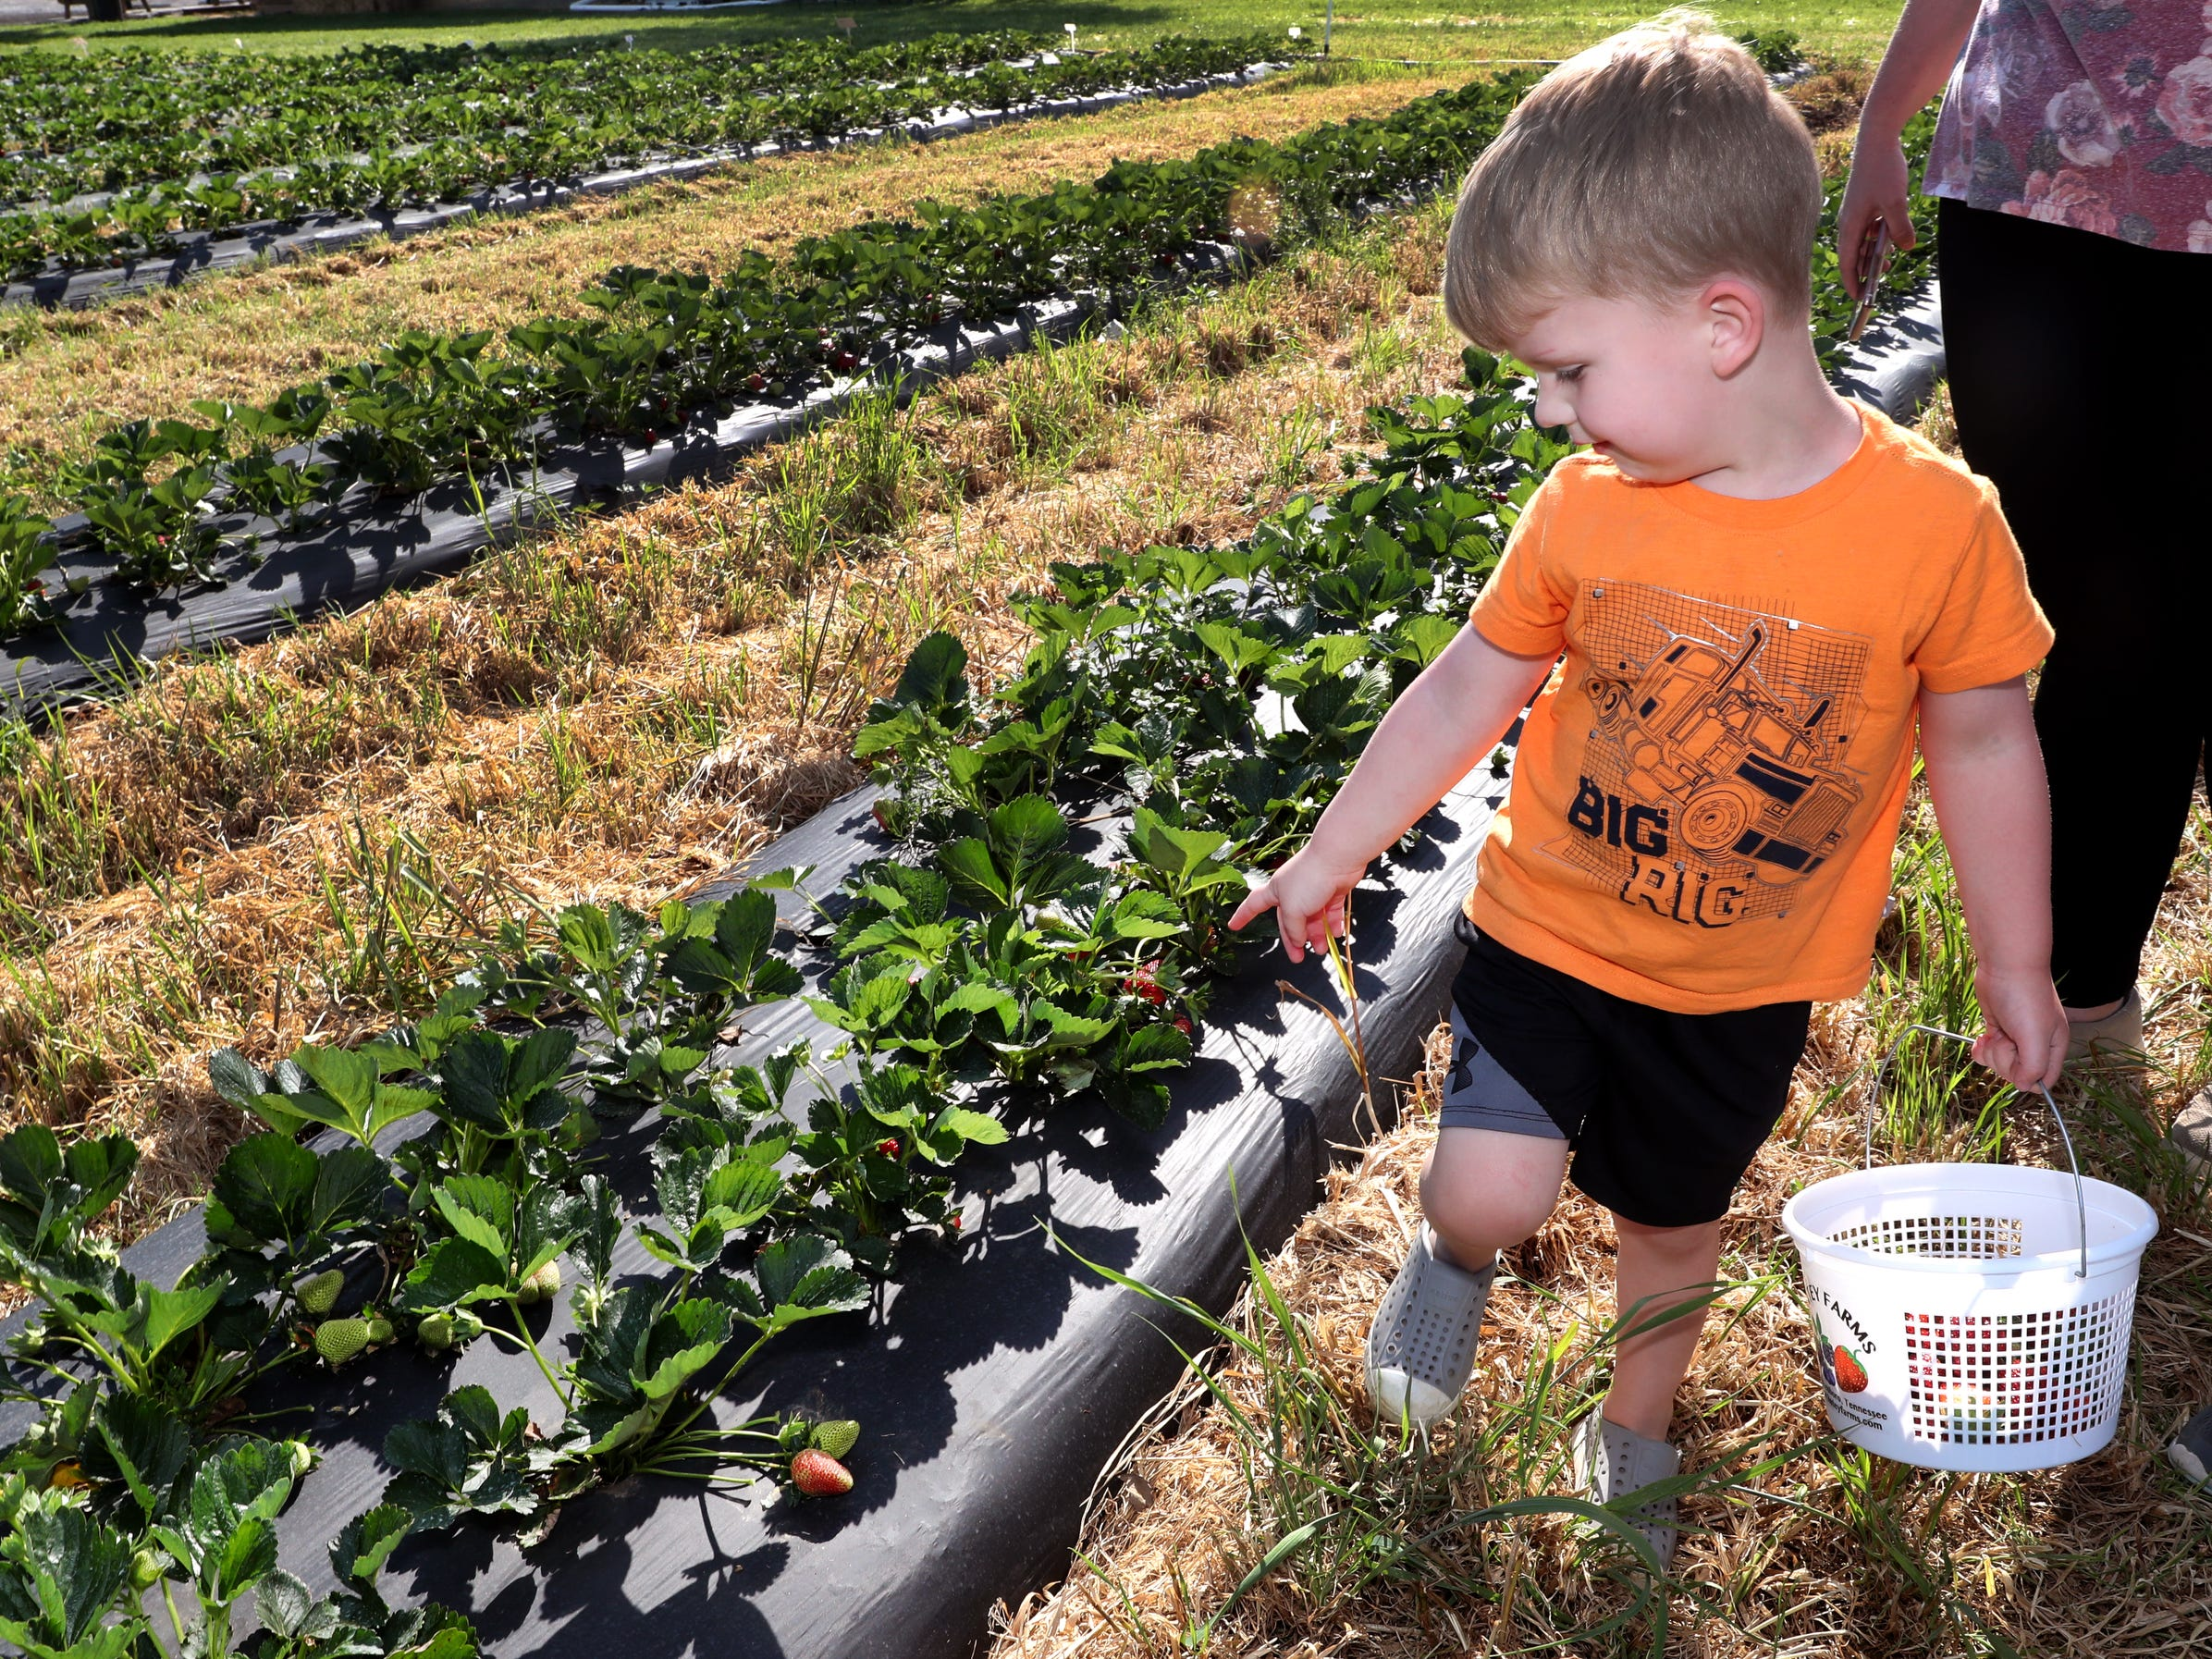 Rhett Trotter, 3, walks down a row of strawberry plants as he looks for large ripe strawberries to pick on Wednesday April 24, 2019, at Batey Farms in Murfreesboro.